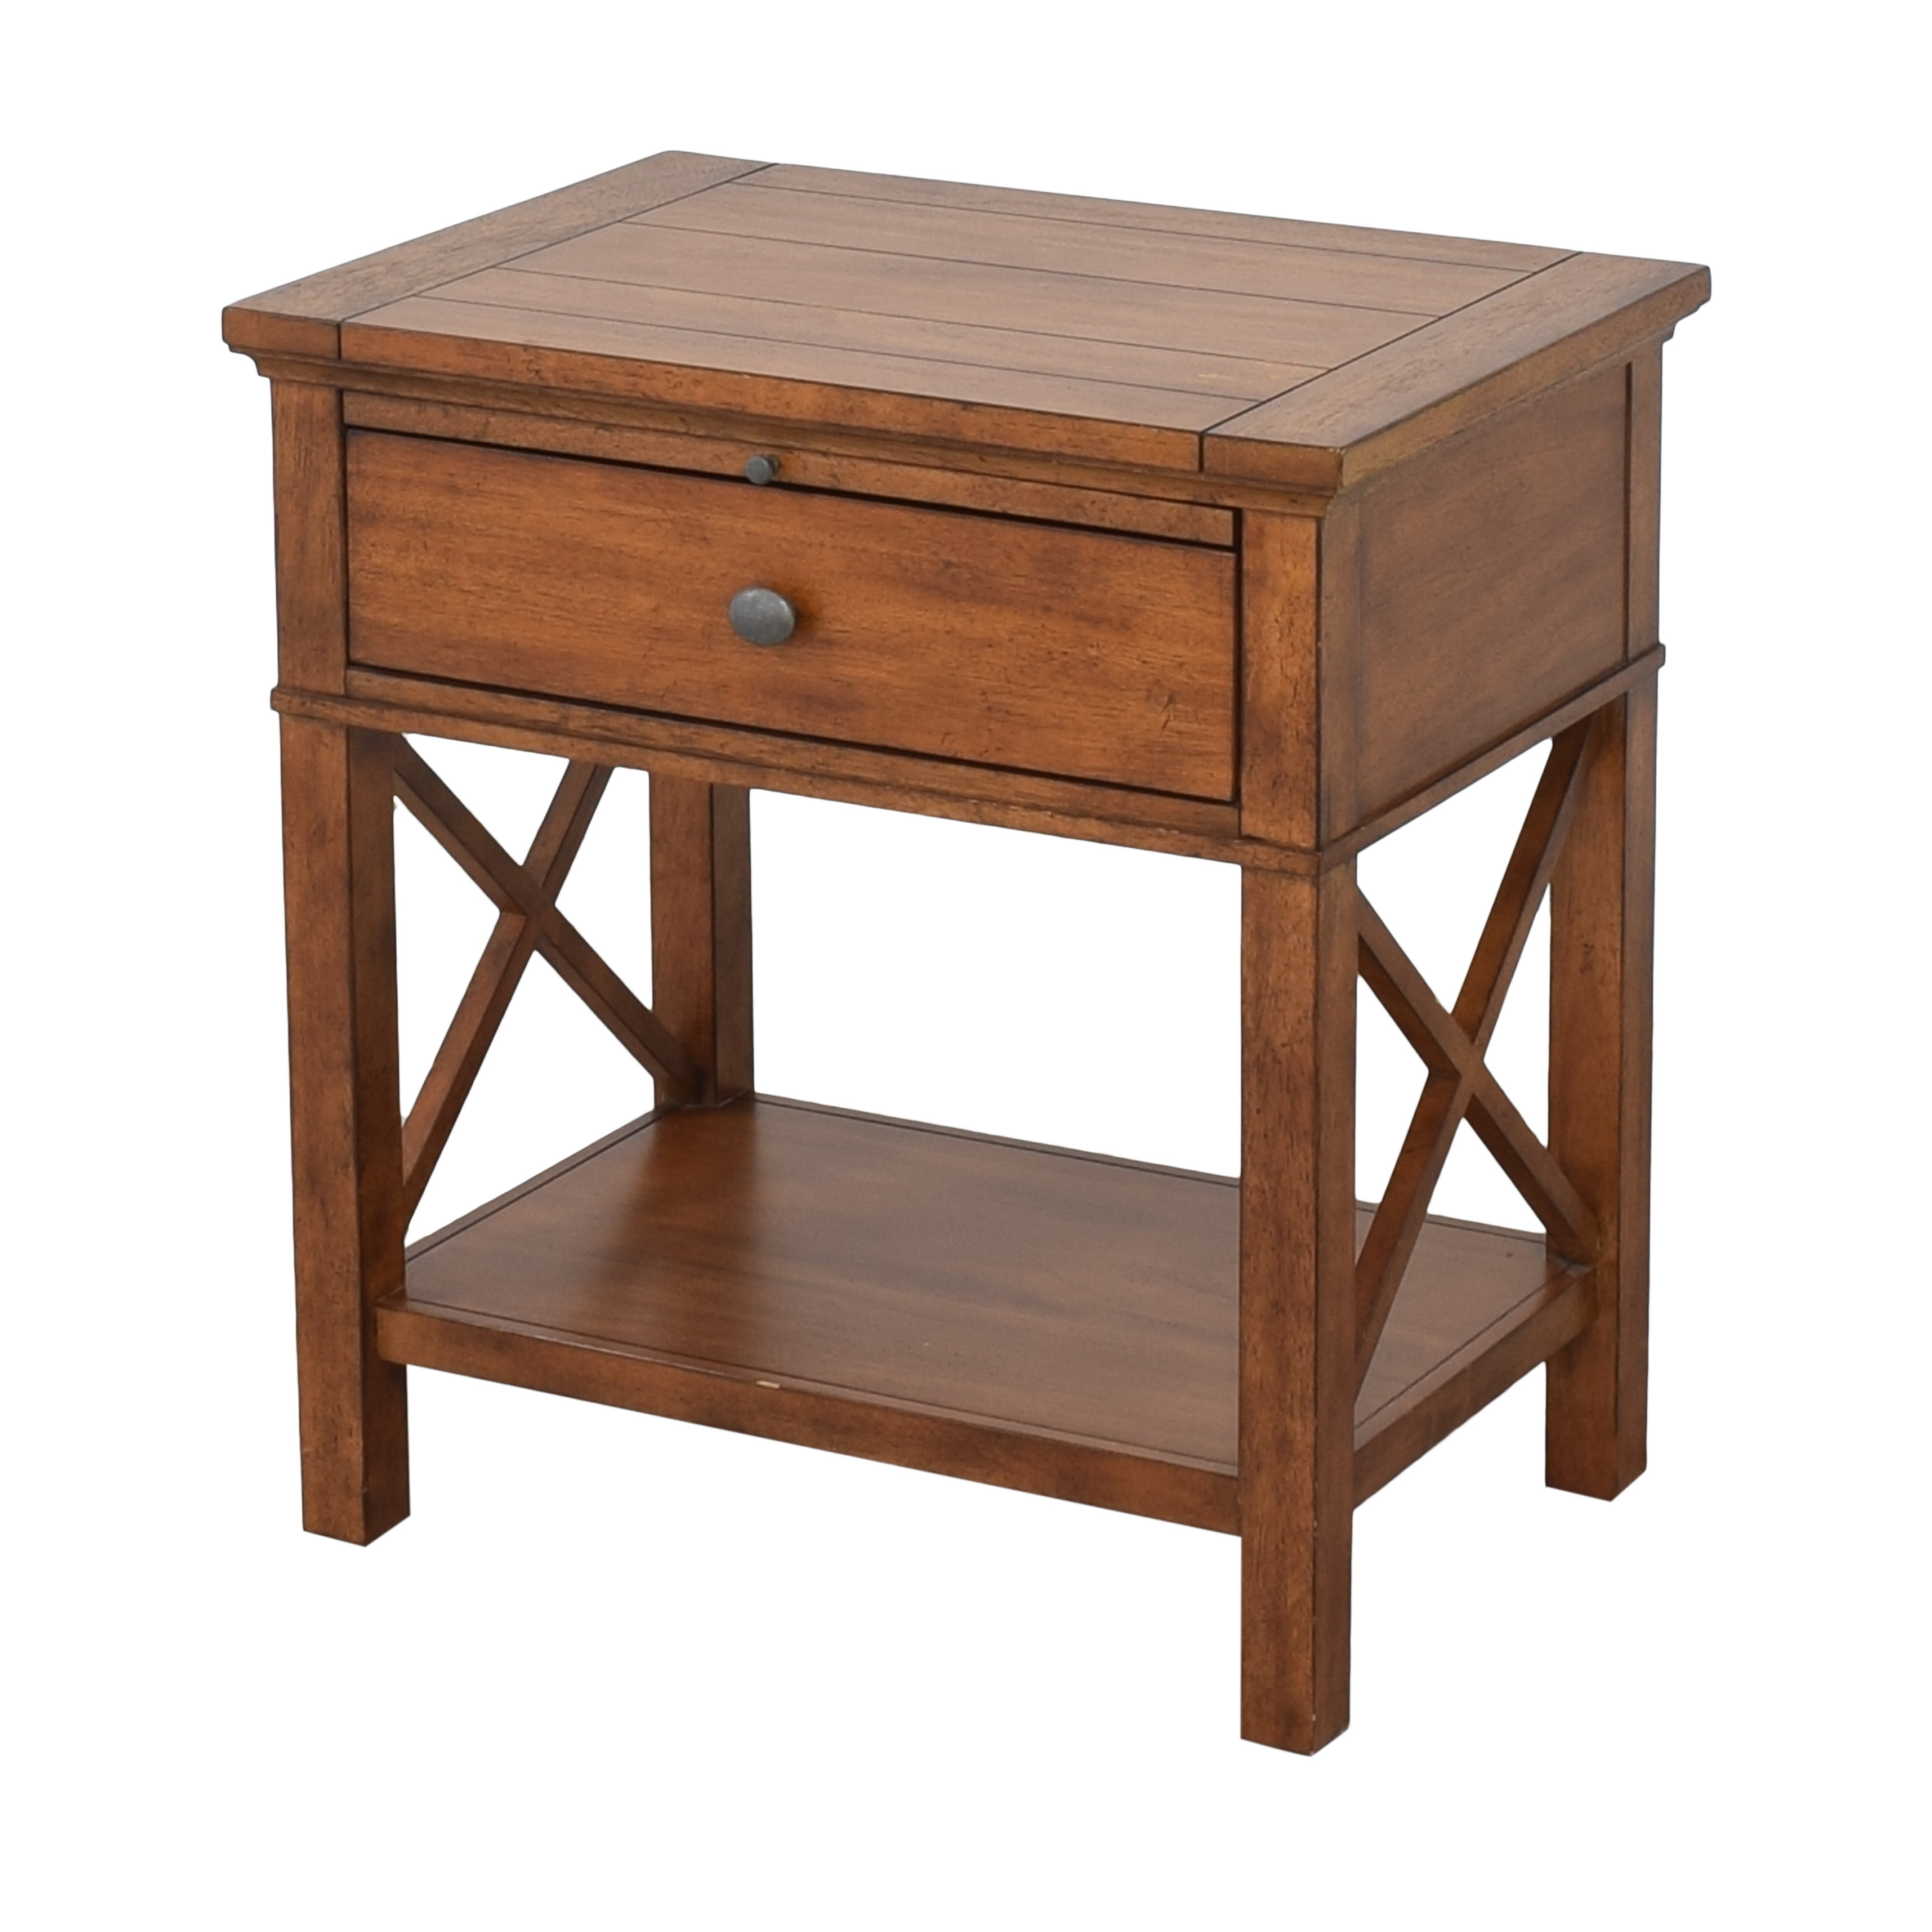 Ethan Allen Ethan Allen Alec X Night Table with Desk Extension pa